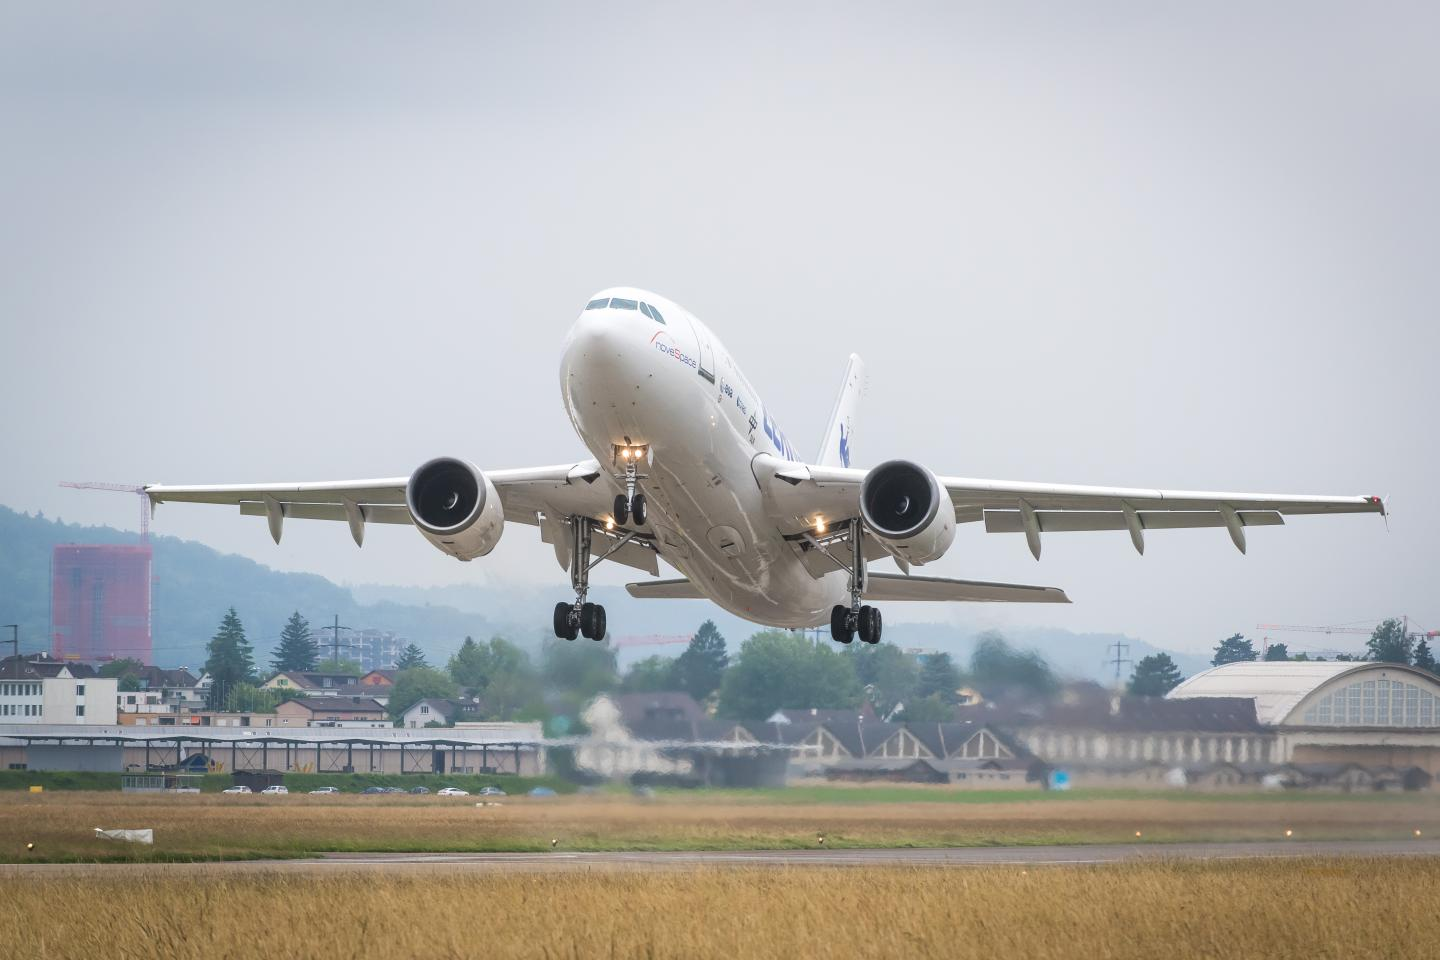 The Fourth Parabolic Flight Takes off Today from Dübendorf Airfield